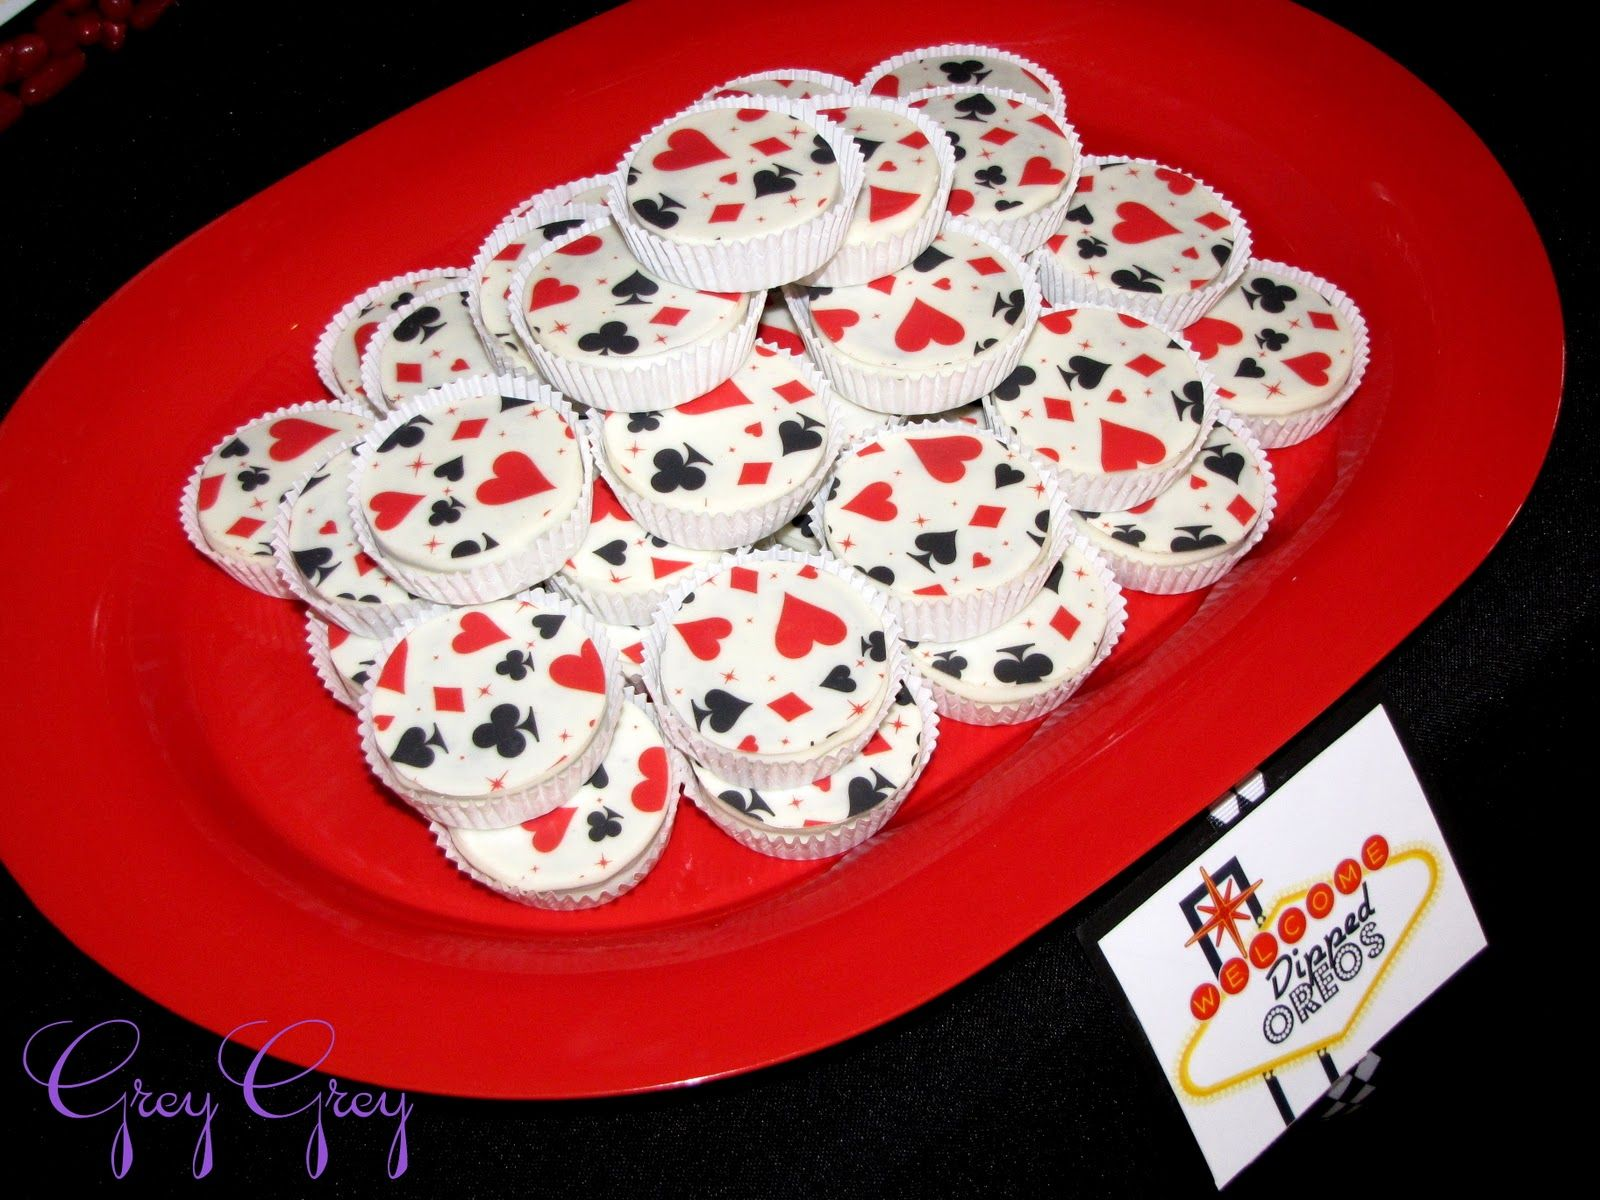 party time casino game